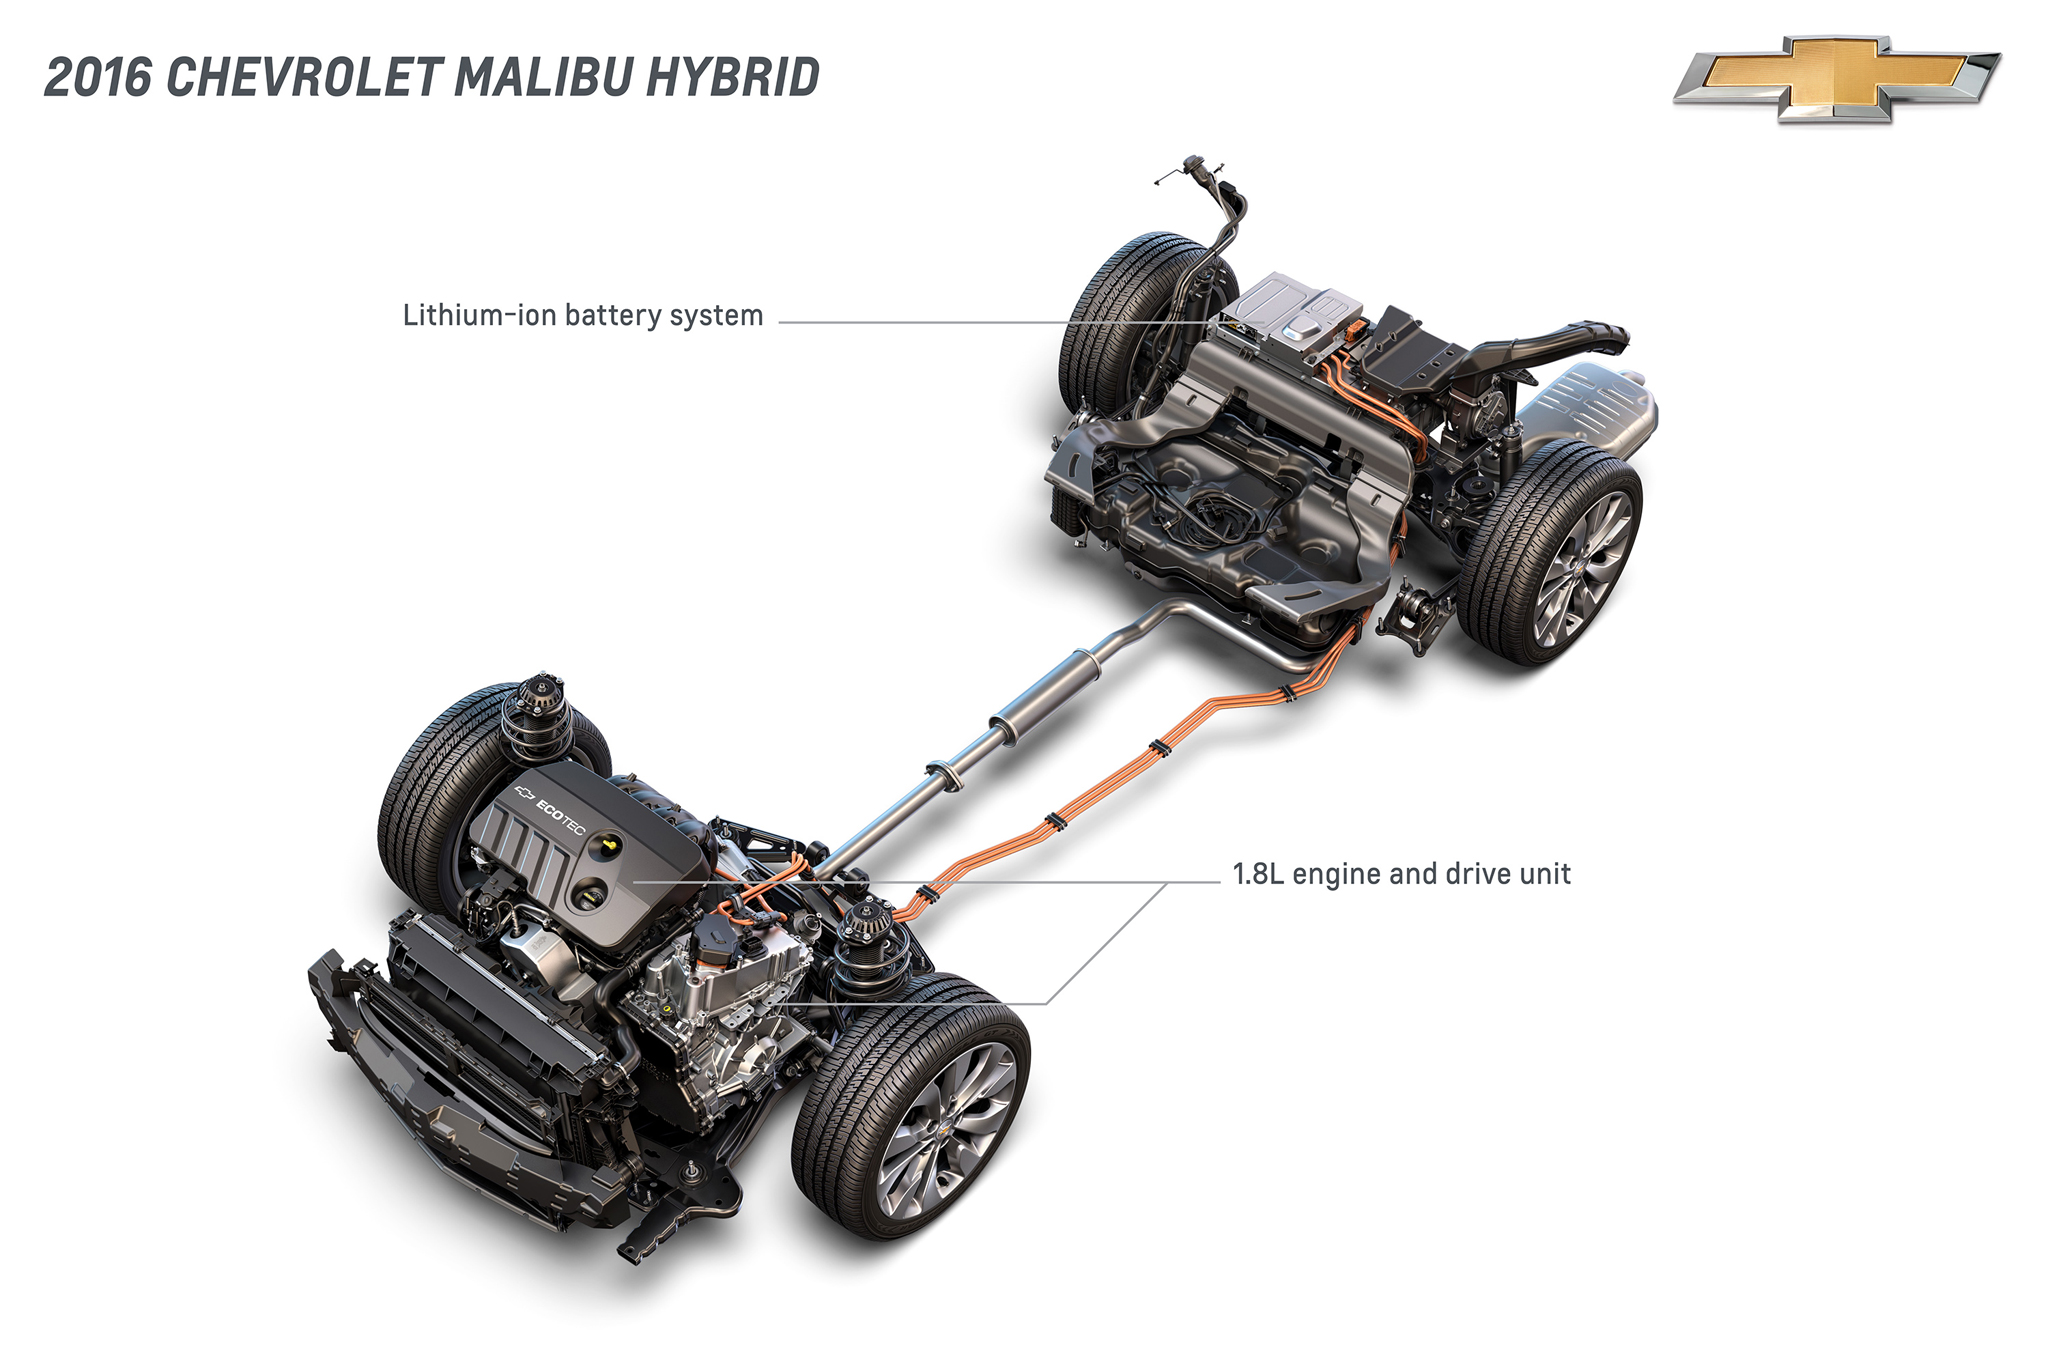 2016 Chevrolet Malibu Hybrid Comes To New York Estimated At 45 Mpg 2 5 Liter Jeep Engine Diagram